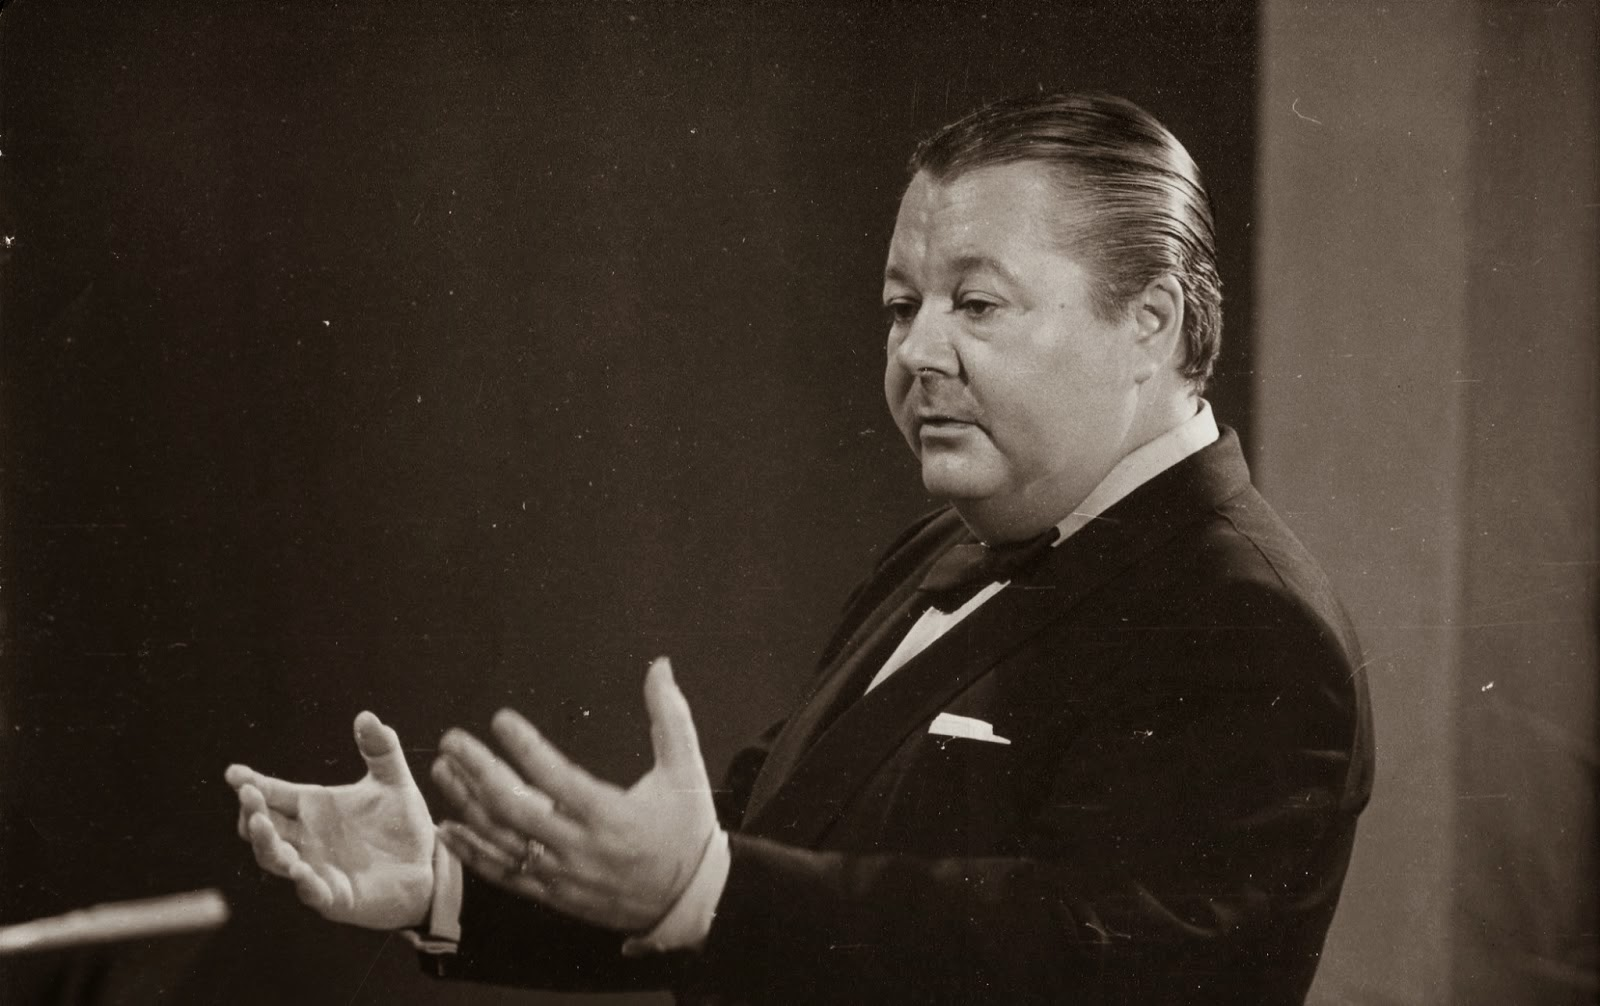 Troilo as orchestra director (C.1960)